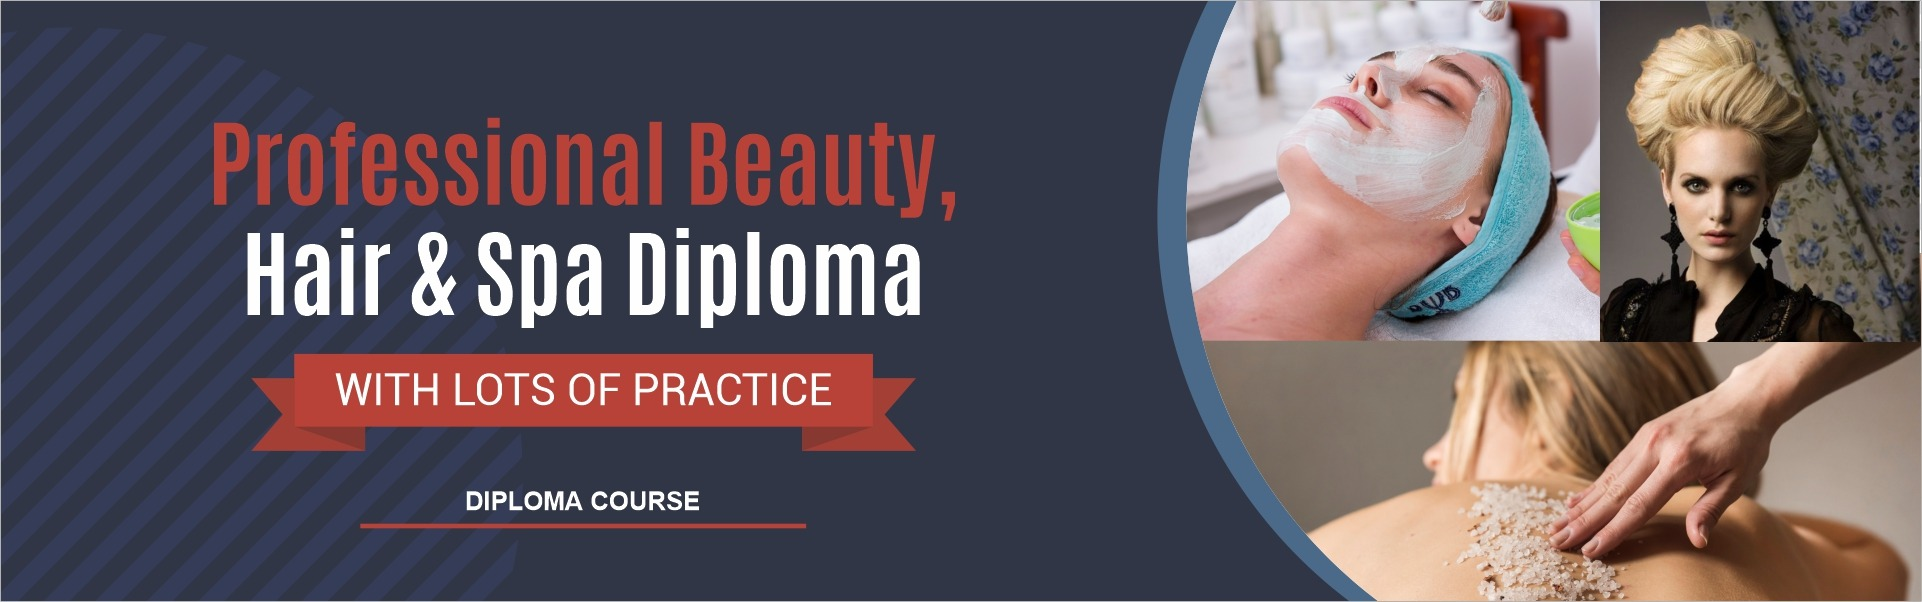 Professional Beauty Hair Spa Diploma Course